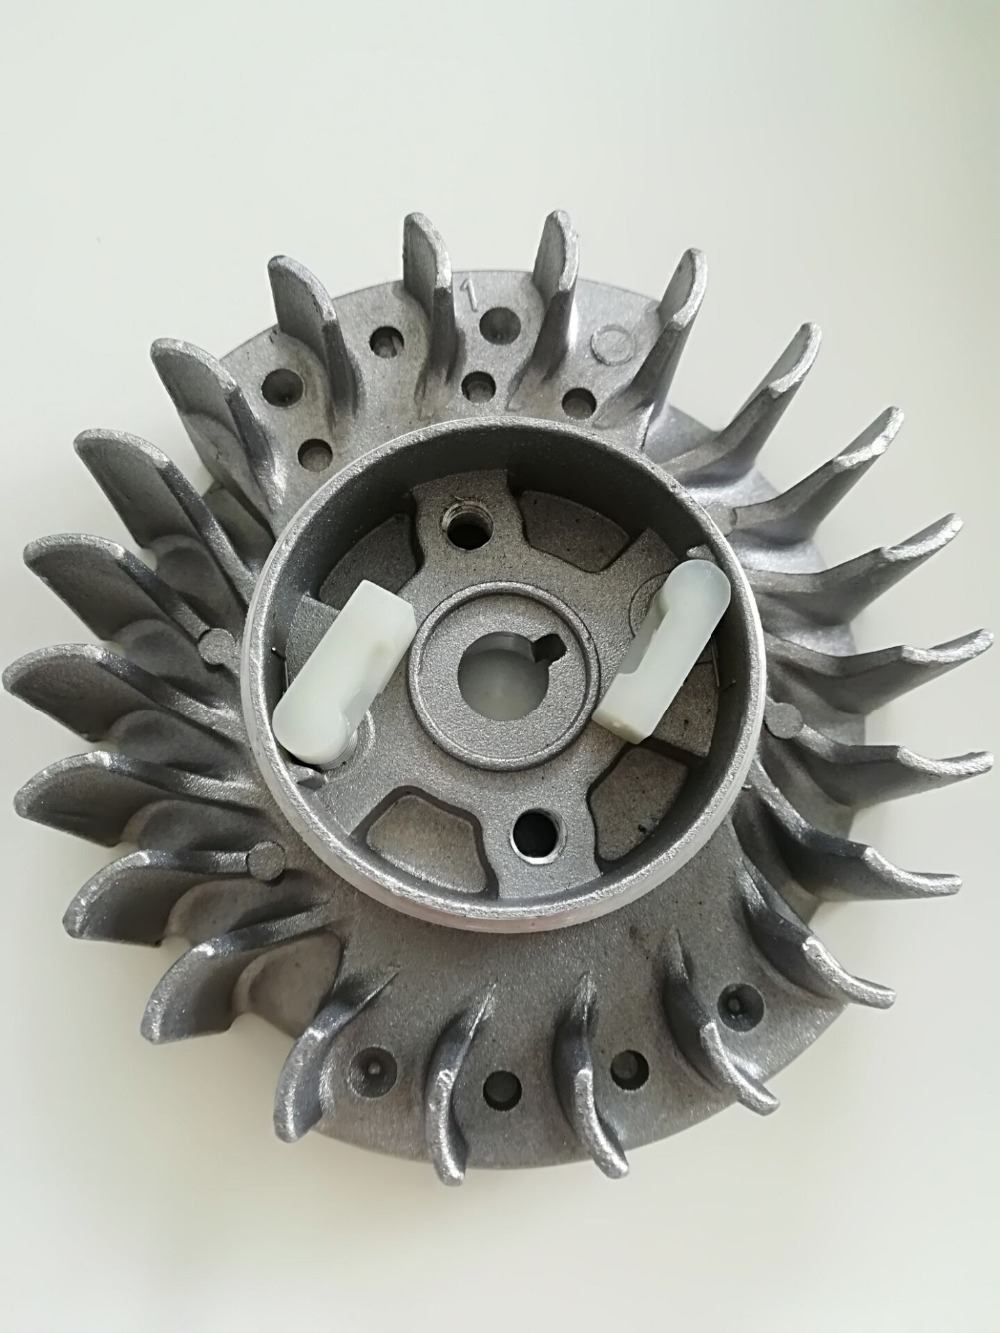 Replacement Parts Fly Wheel Fits Polrad Passend Fur FLYWHEEL FOR CHINESE CHAINSAW 45CC 52CC 58CC 4500 5200 5800 Neilsen MT-9999